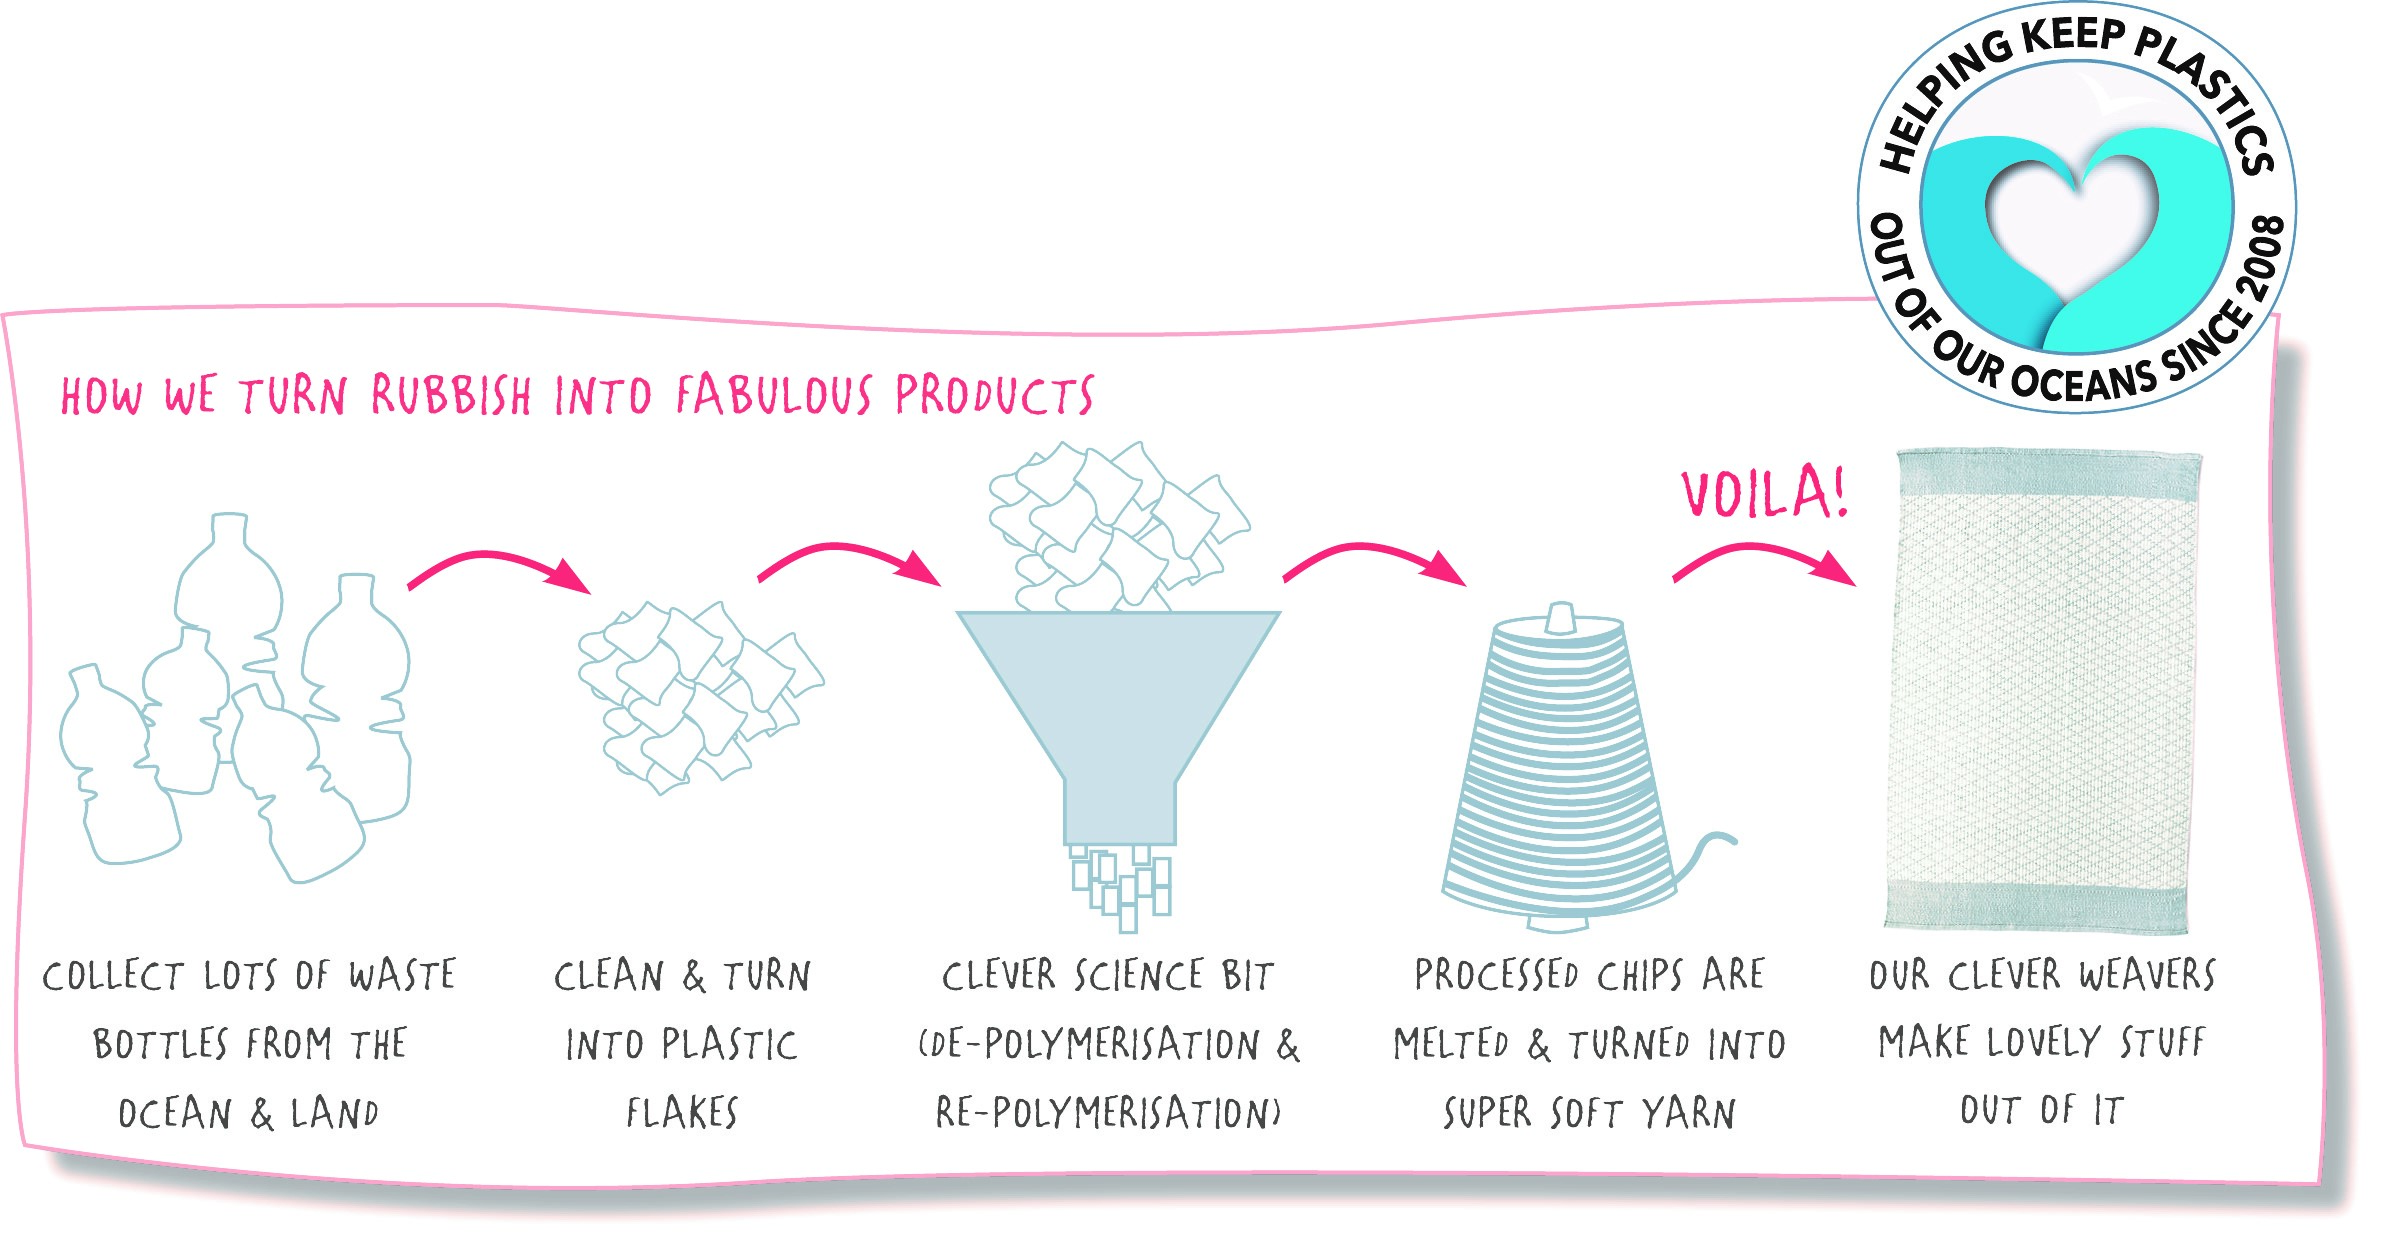 How we turn rubbish into fabulous products - Planet Friendly Recycled